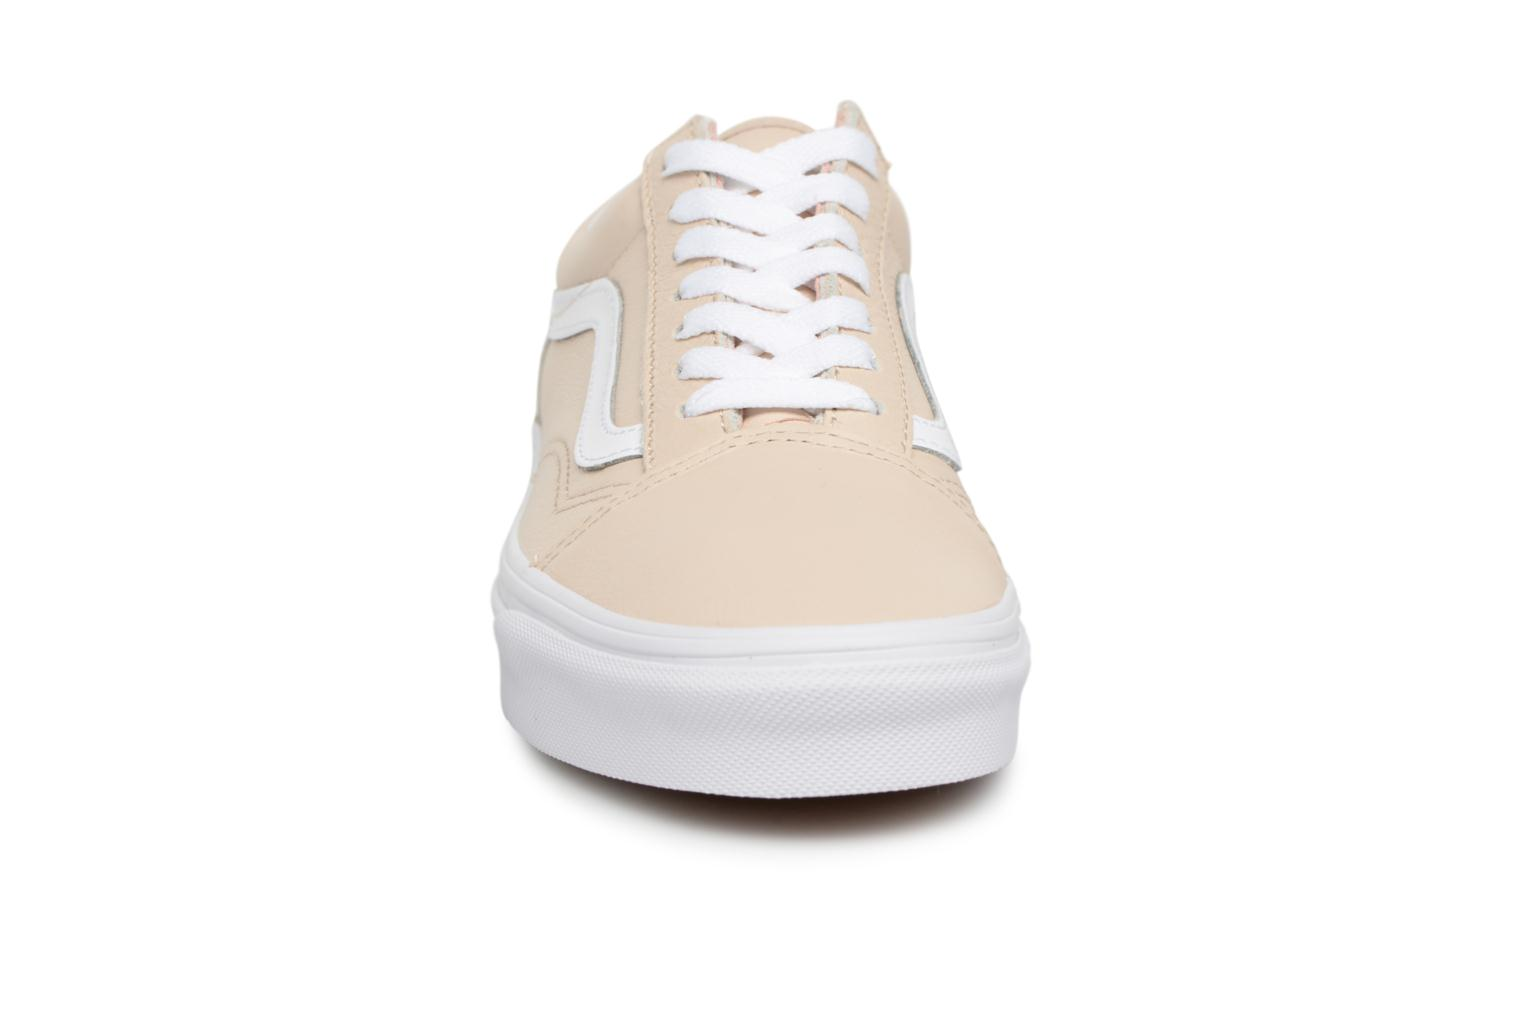 Sand leather W Dollar Old Skool Vans x1qI6P4Z